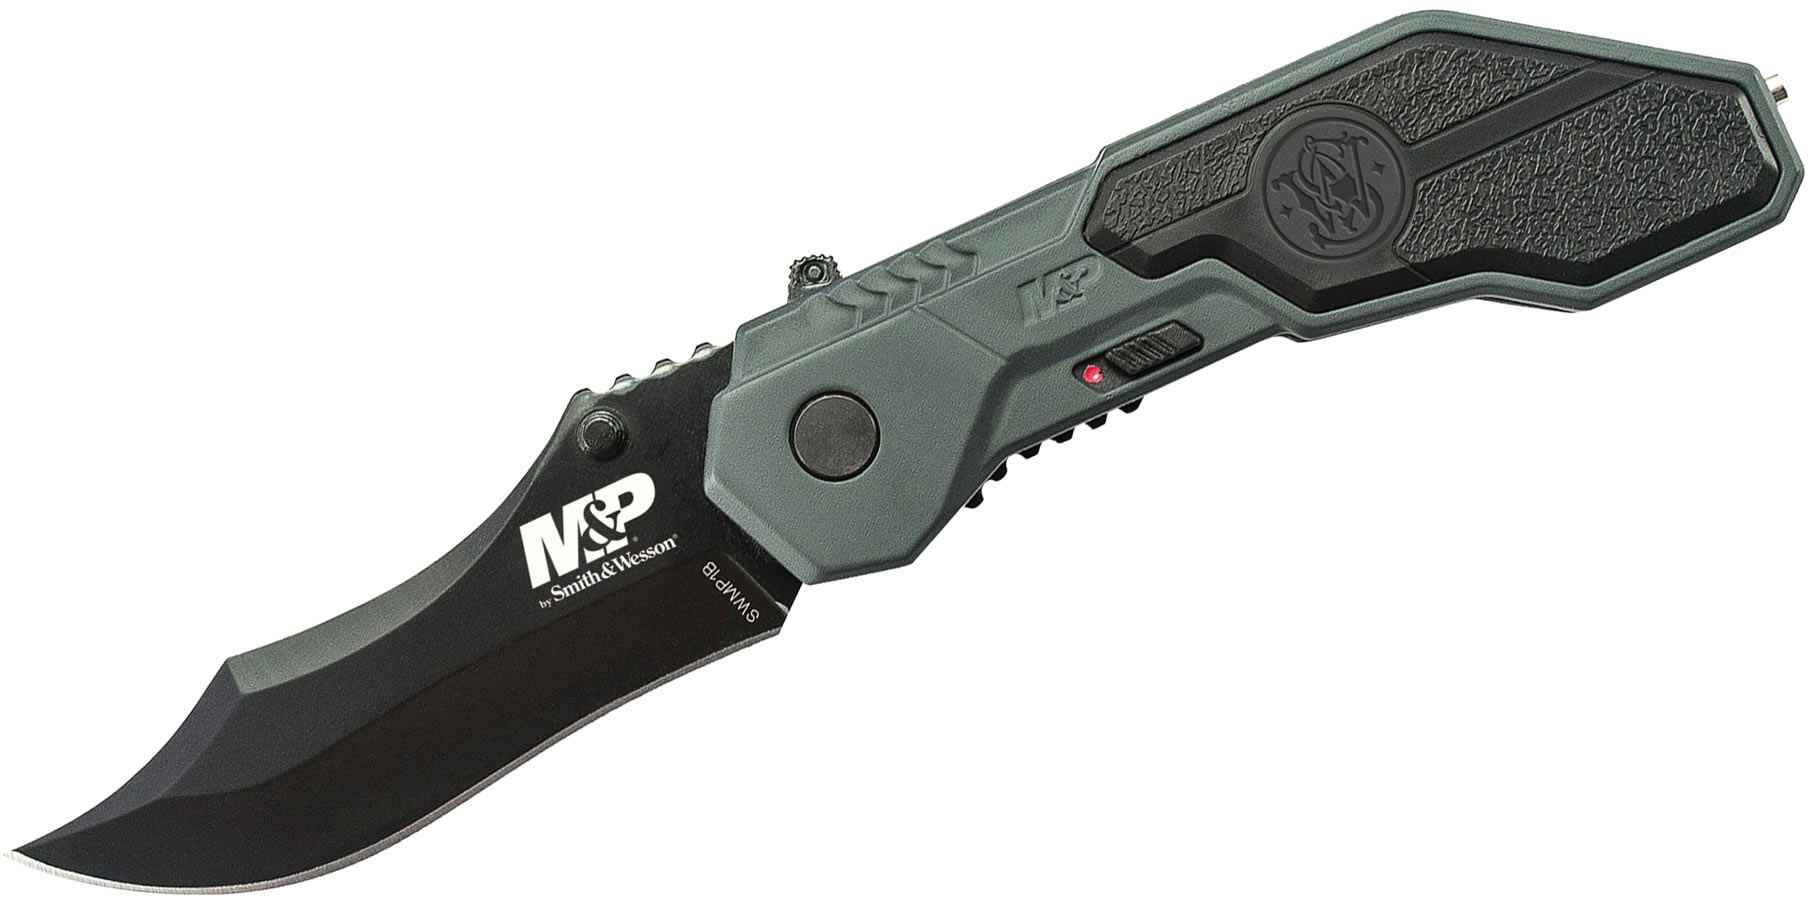 Smith & Wesson SWMP1B M&P MAGIC Assisted Flipper 2.9 inch Black Plain Blade, Gray Aluminum Handles with Rubber Inlays